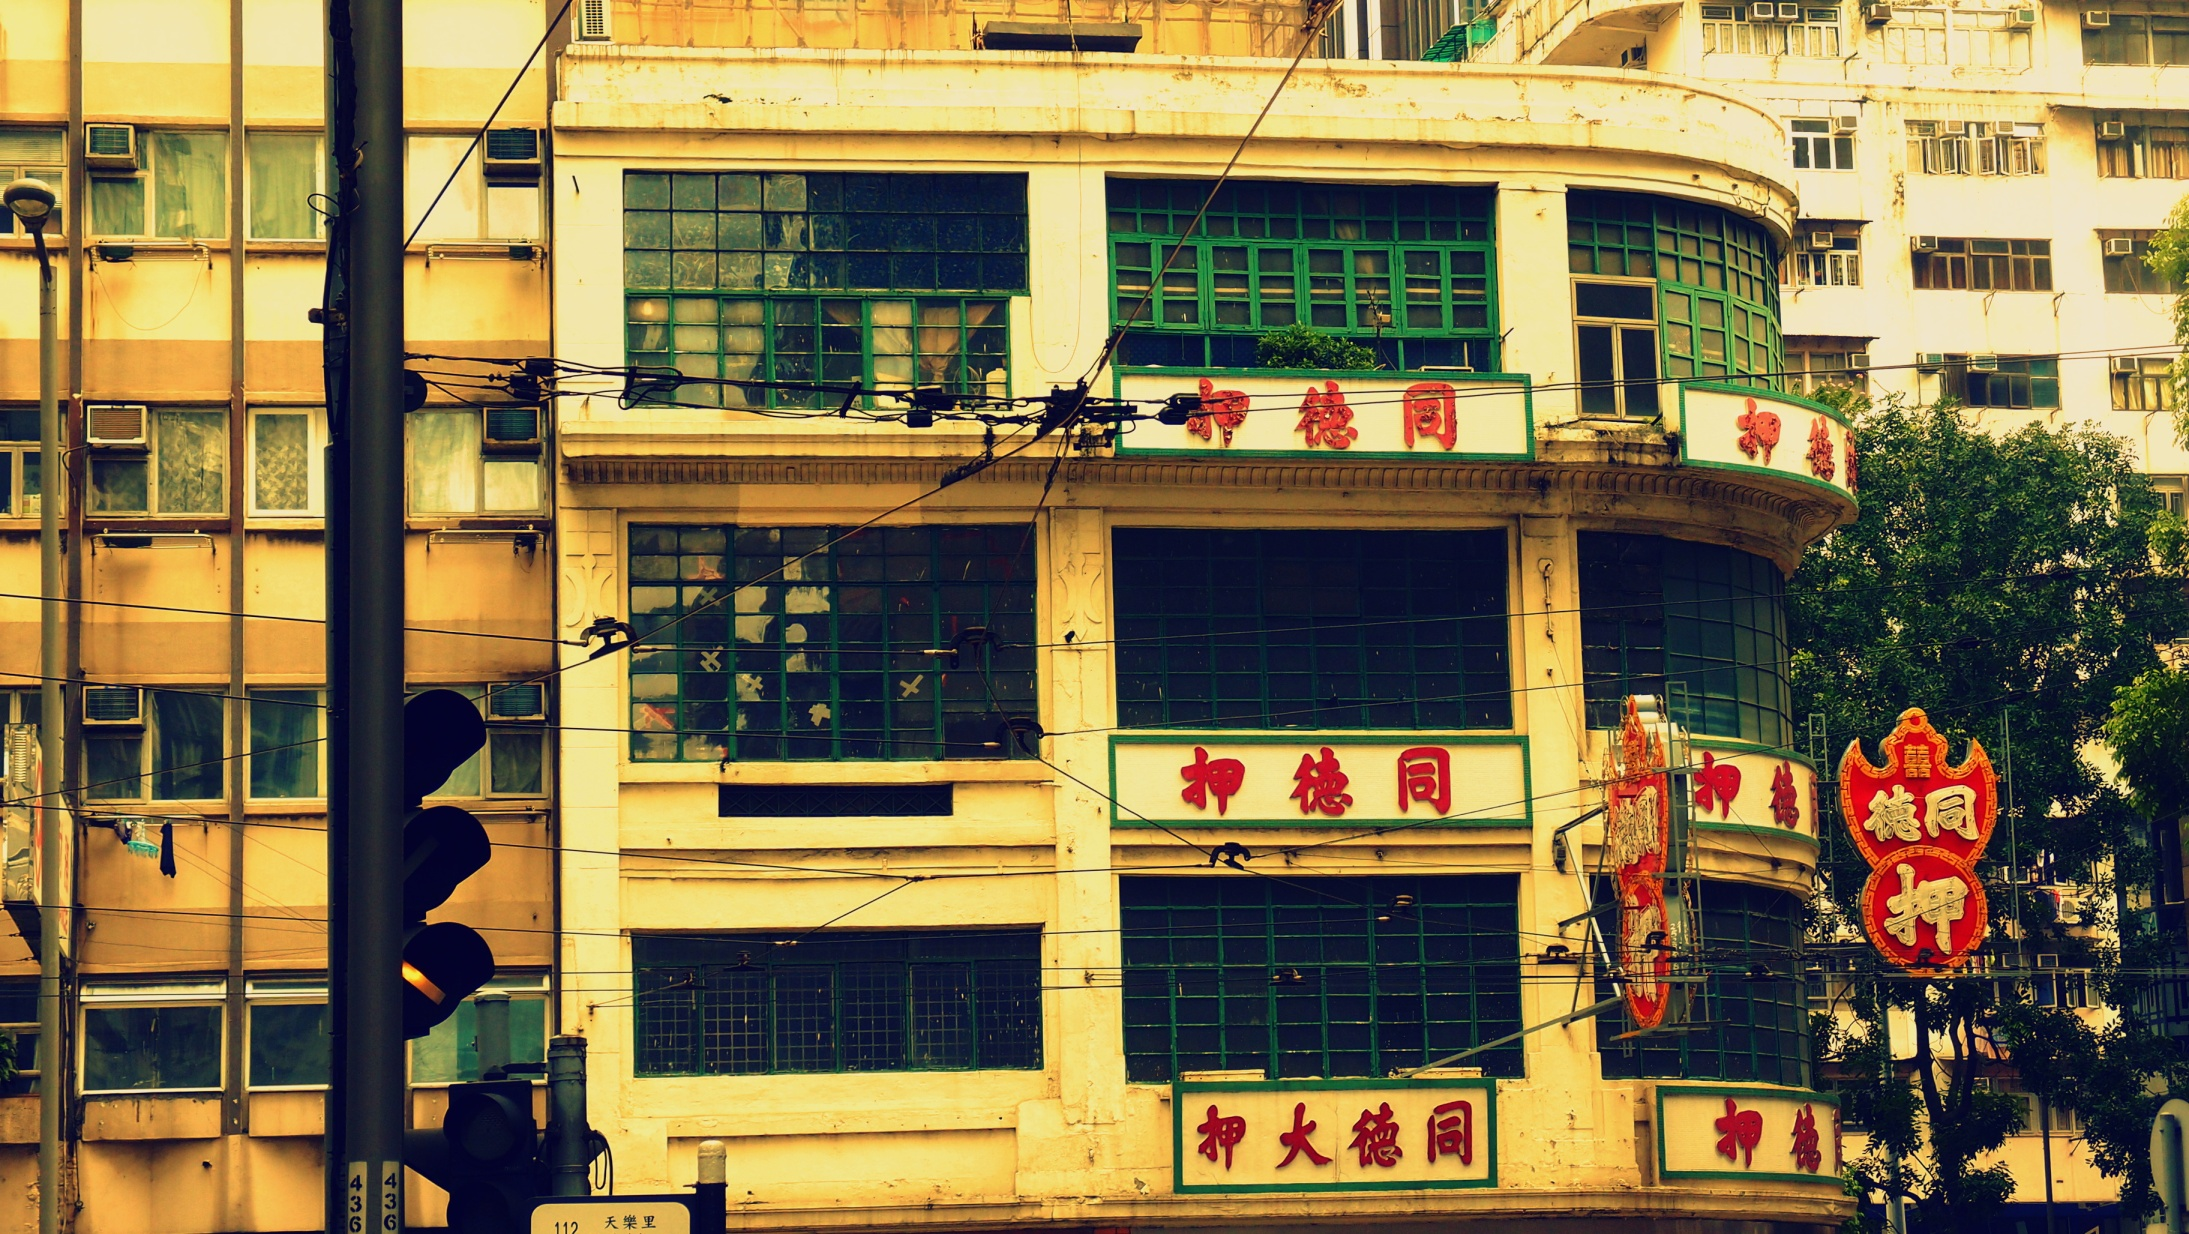 A very old and dodgy looking building near Causeway Bay.